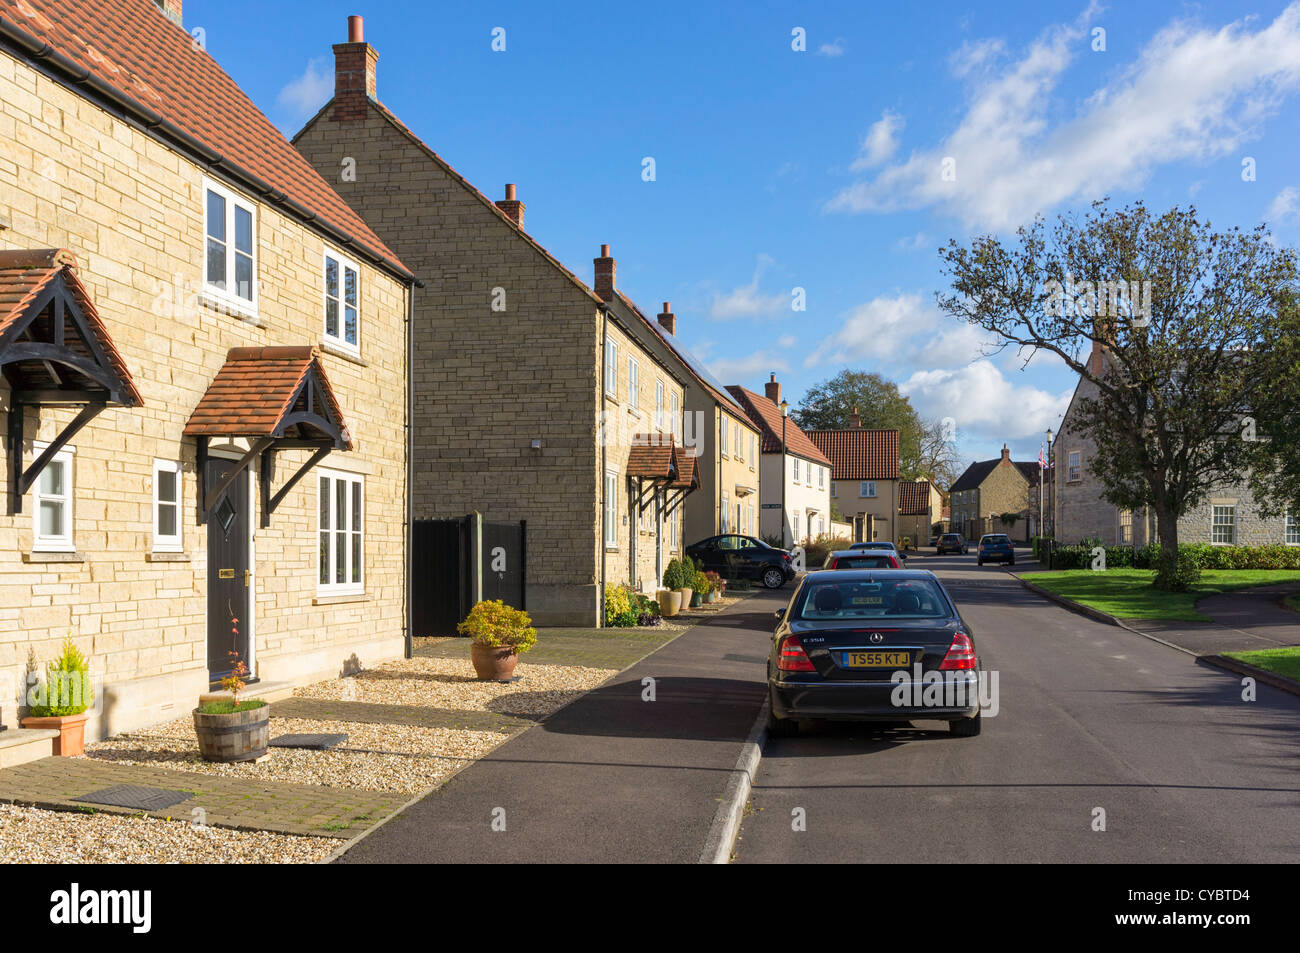 Houses in a street in a modern housing estate, UK - Stock Image